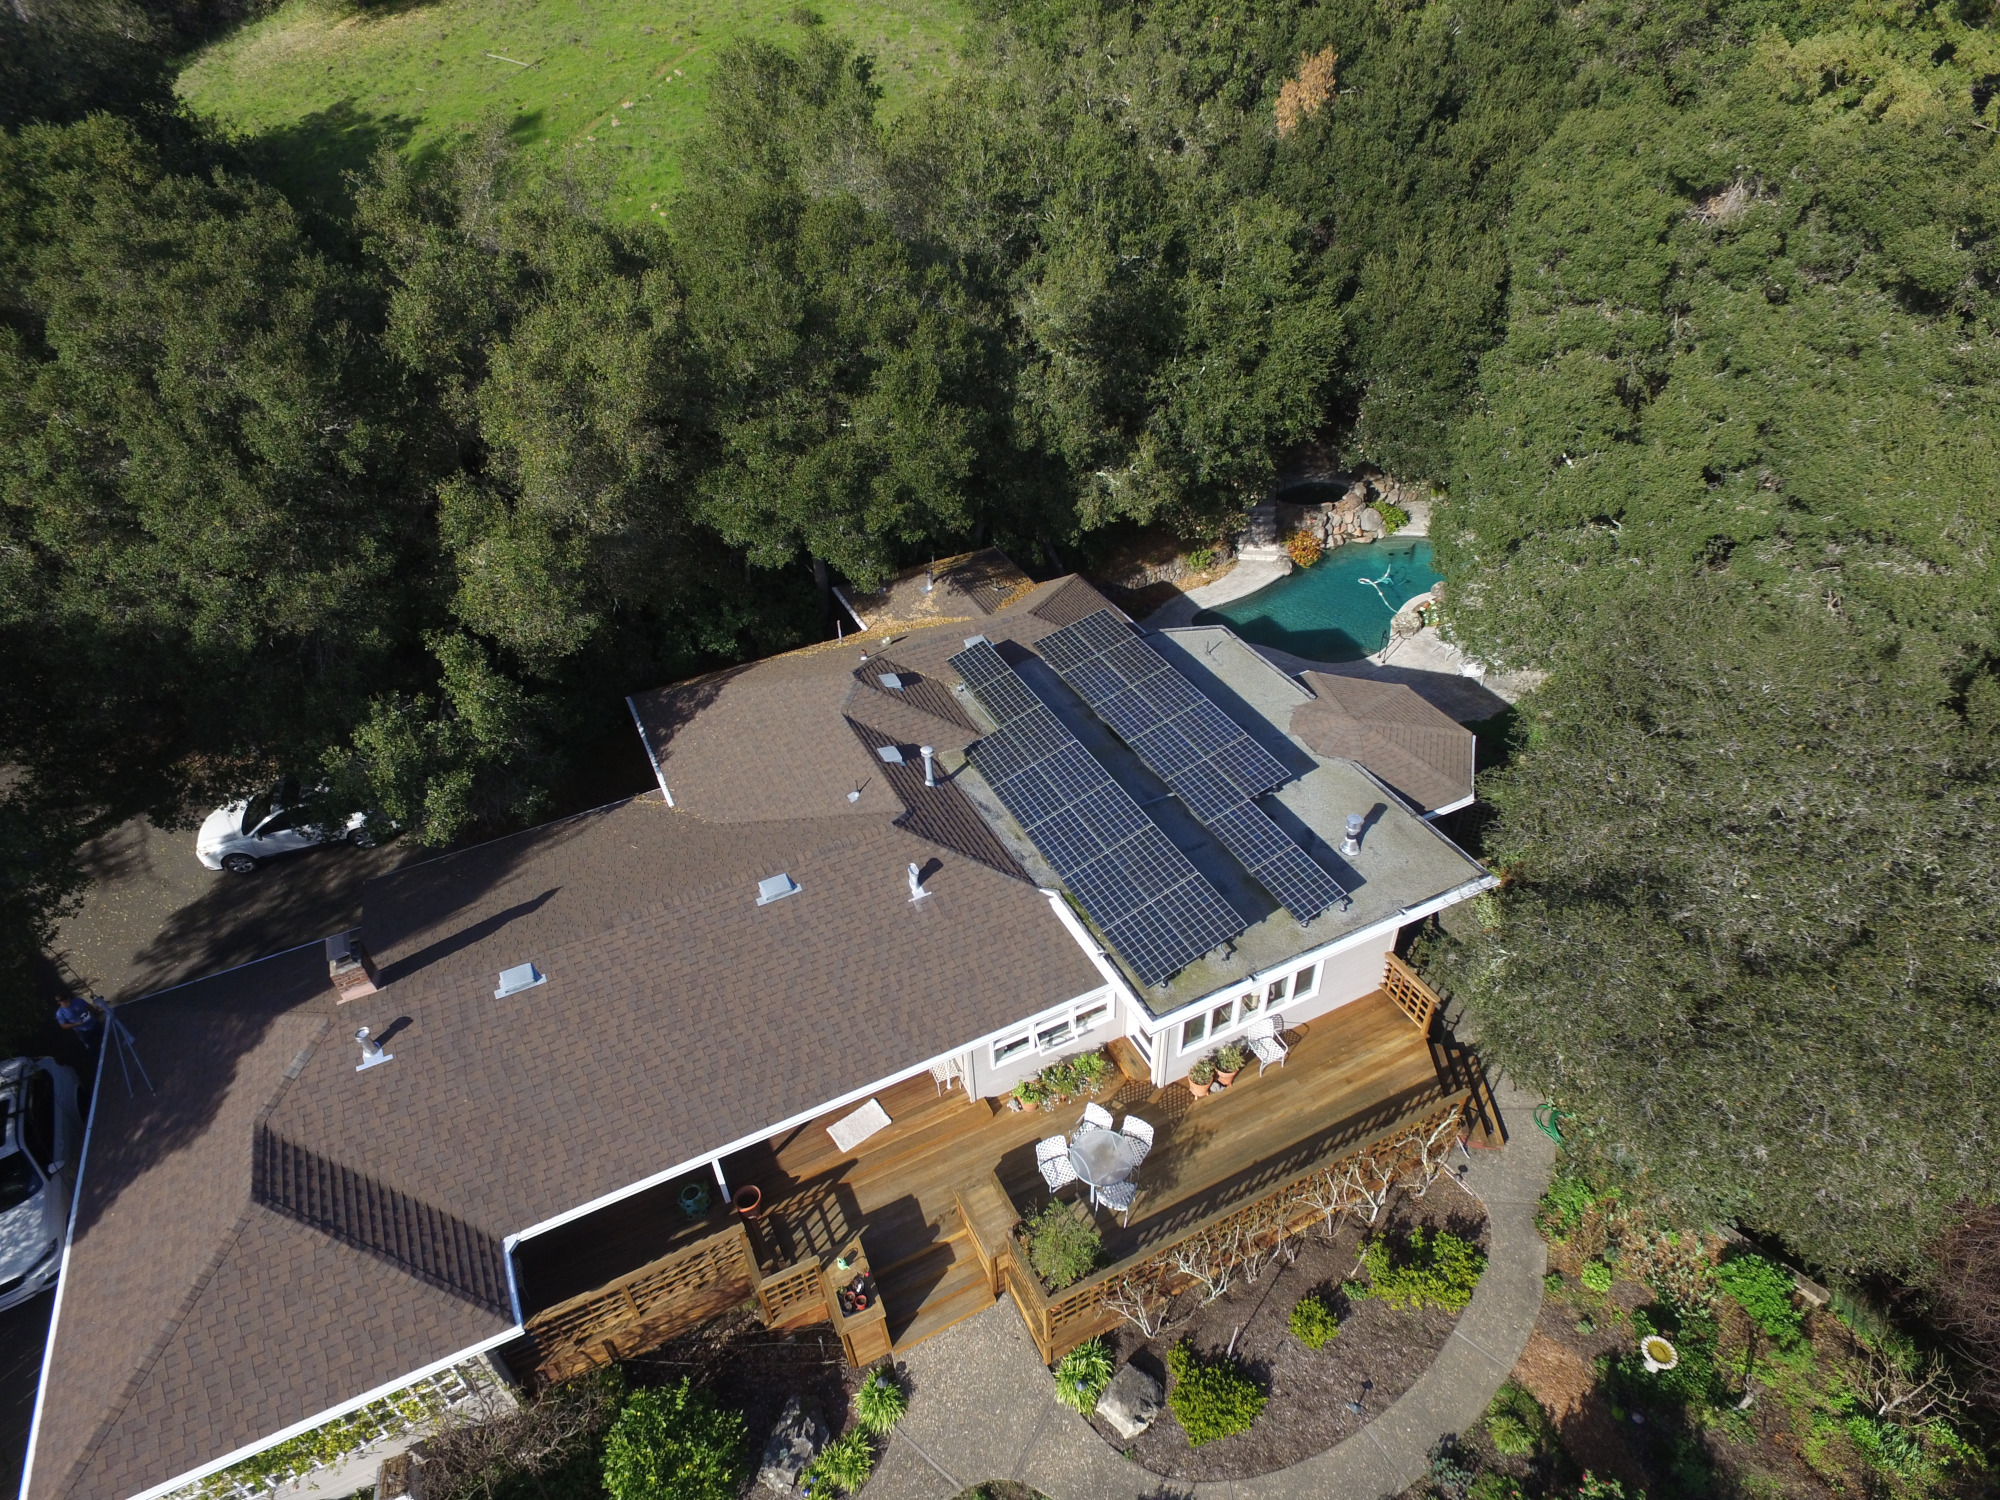 Aerial rooftop solar showing two tilted panel arrays facing south on a home surrounded by lush green trees